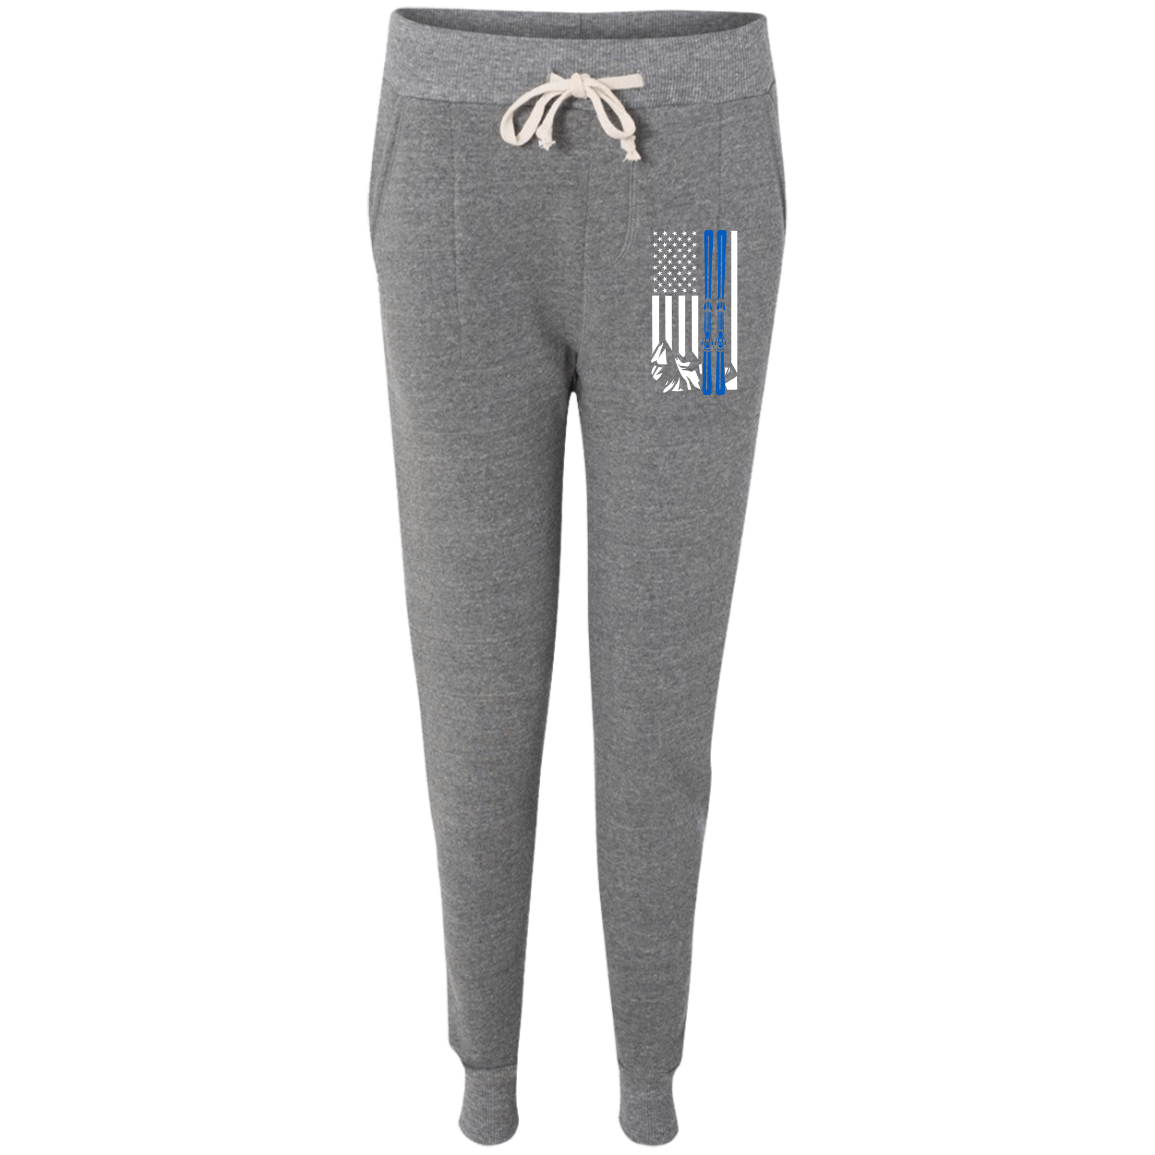 USA Ski Flag Thin Blue Line Women's Adult Fleece Jogger - Powderaddicts